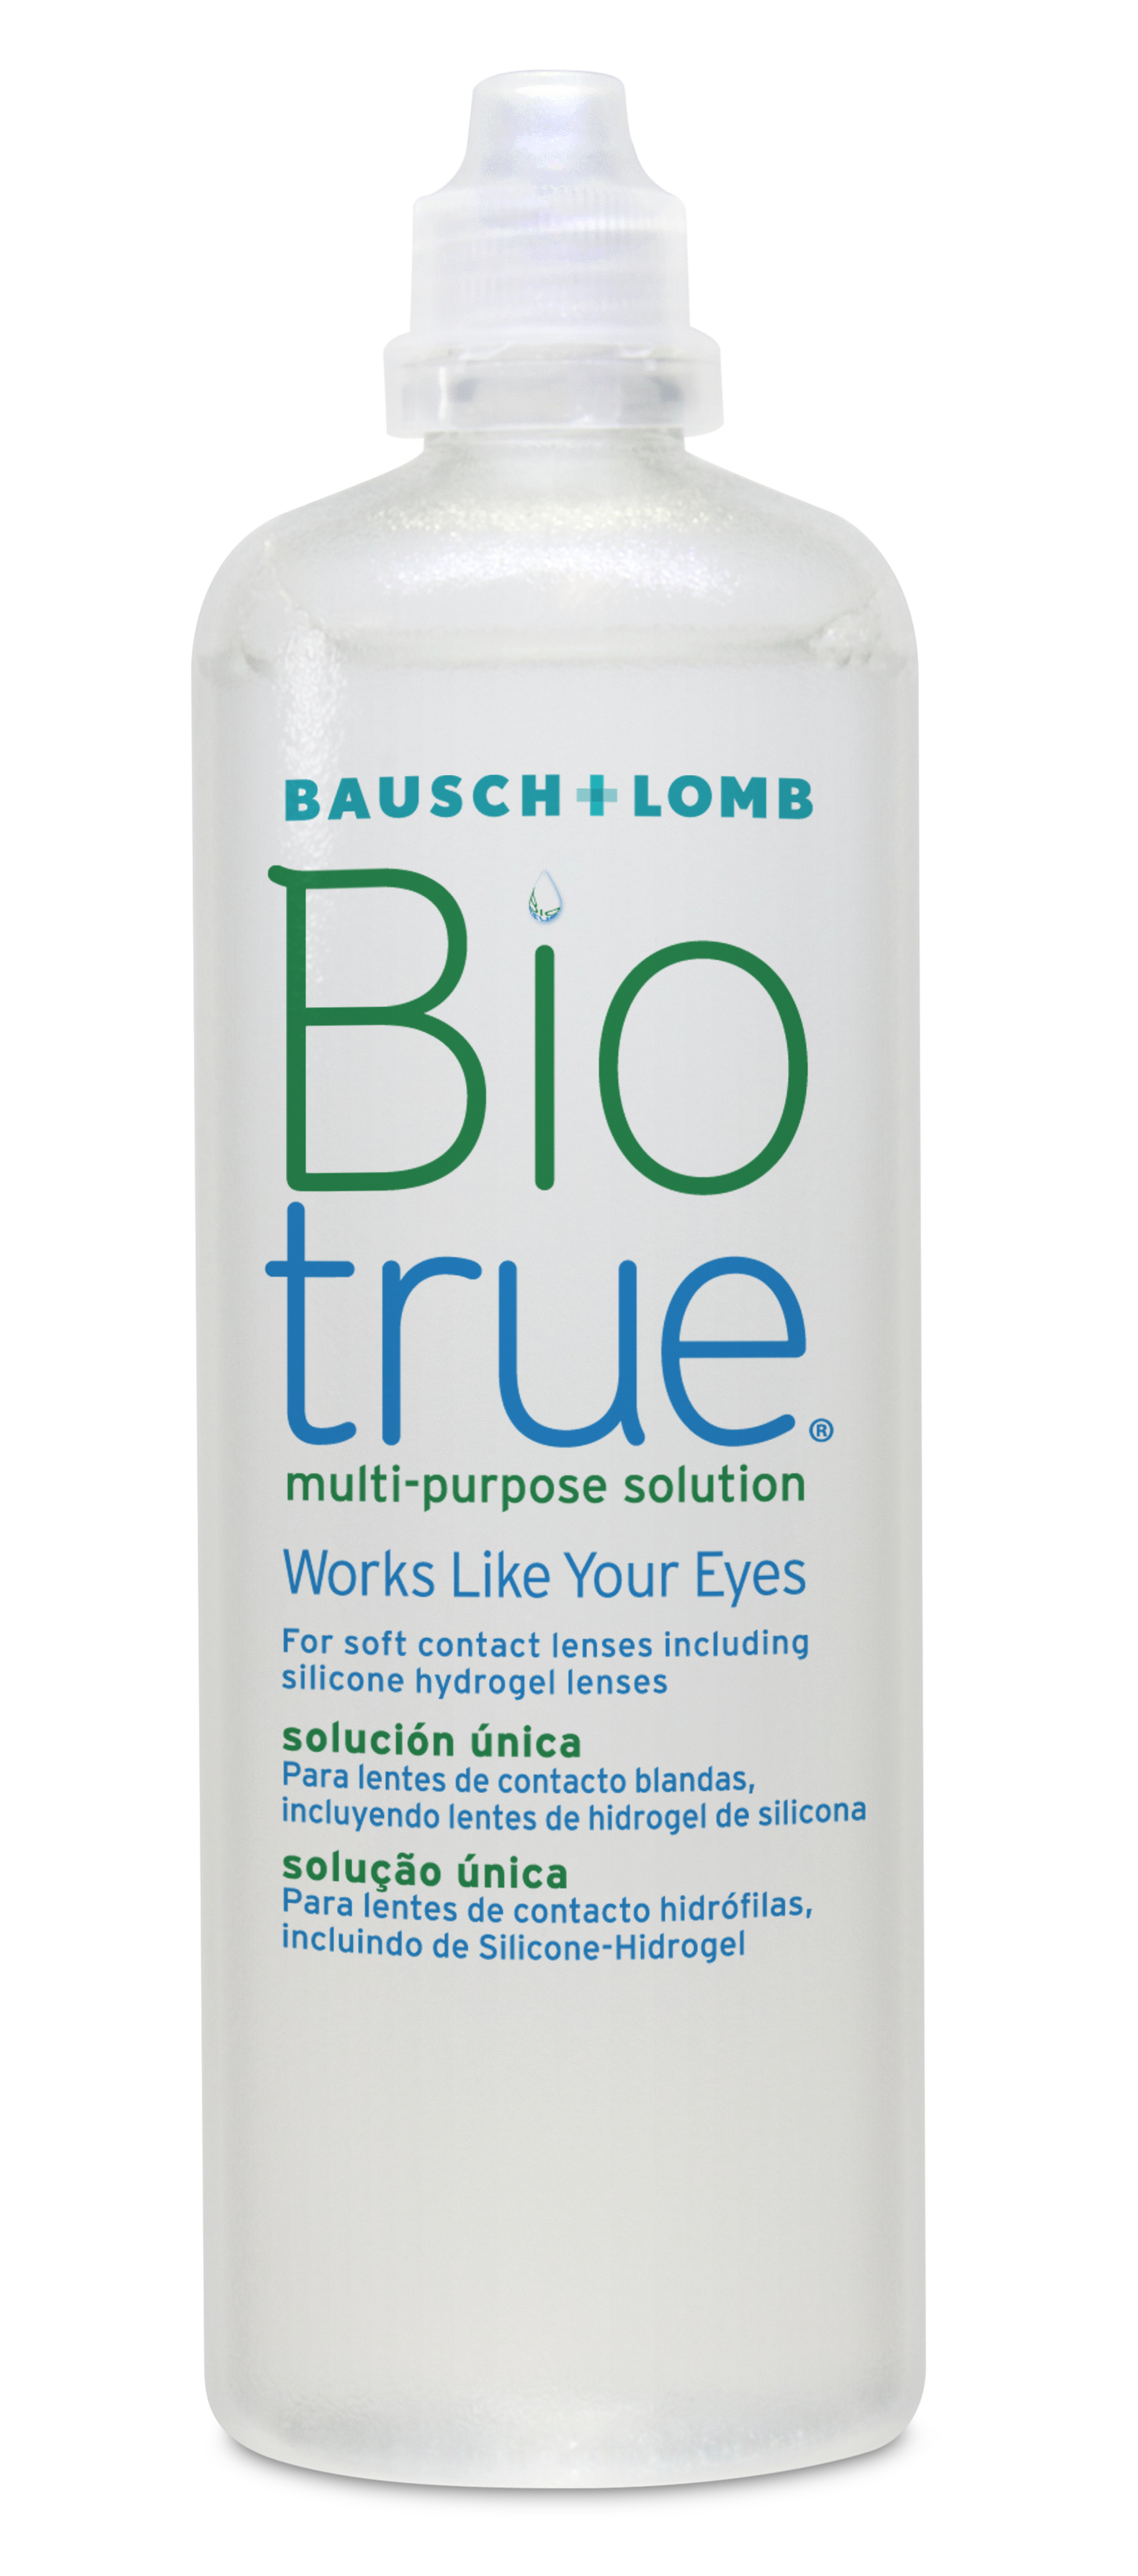 how to open biotrue bottle bausch and lomb